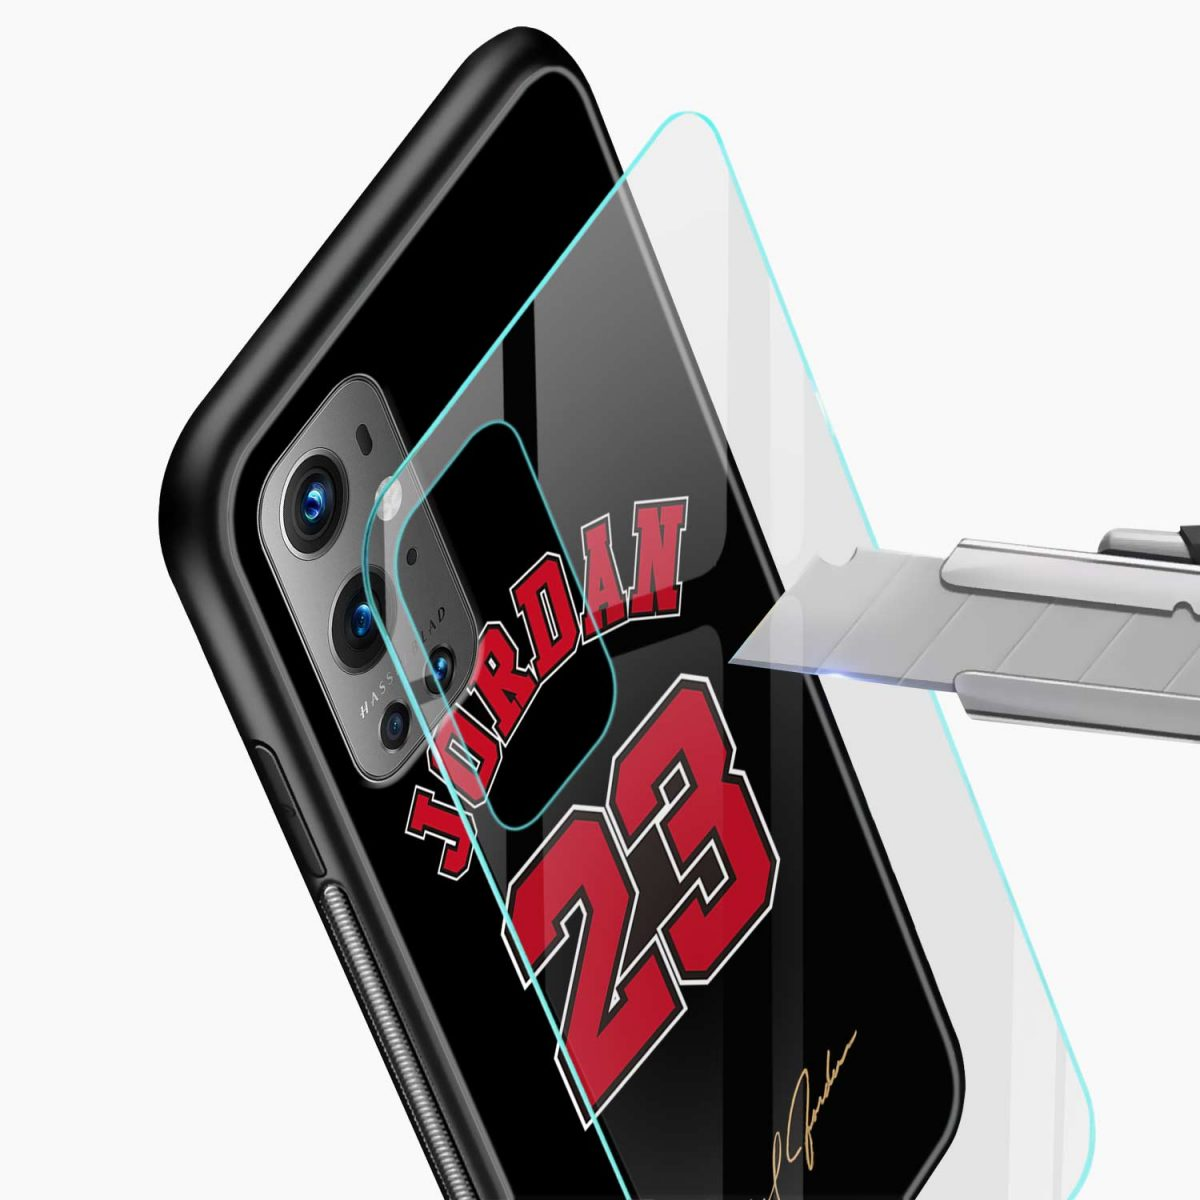 jordan 23 glass view oneplus 9 pro back cover